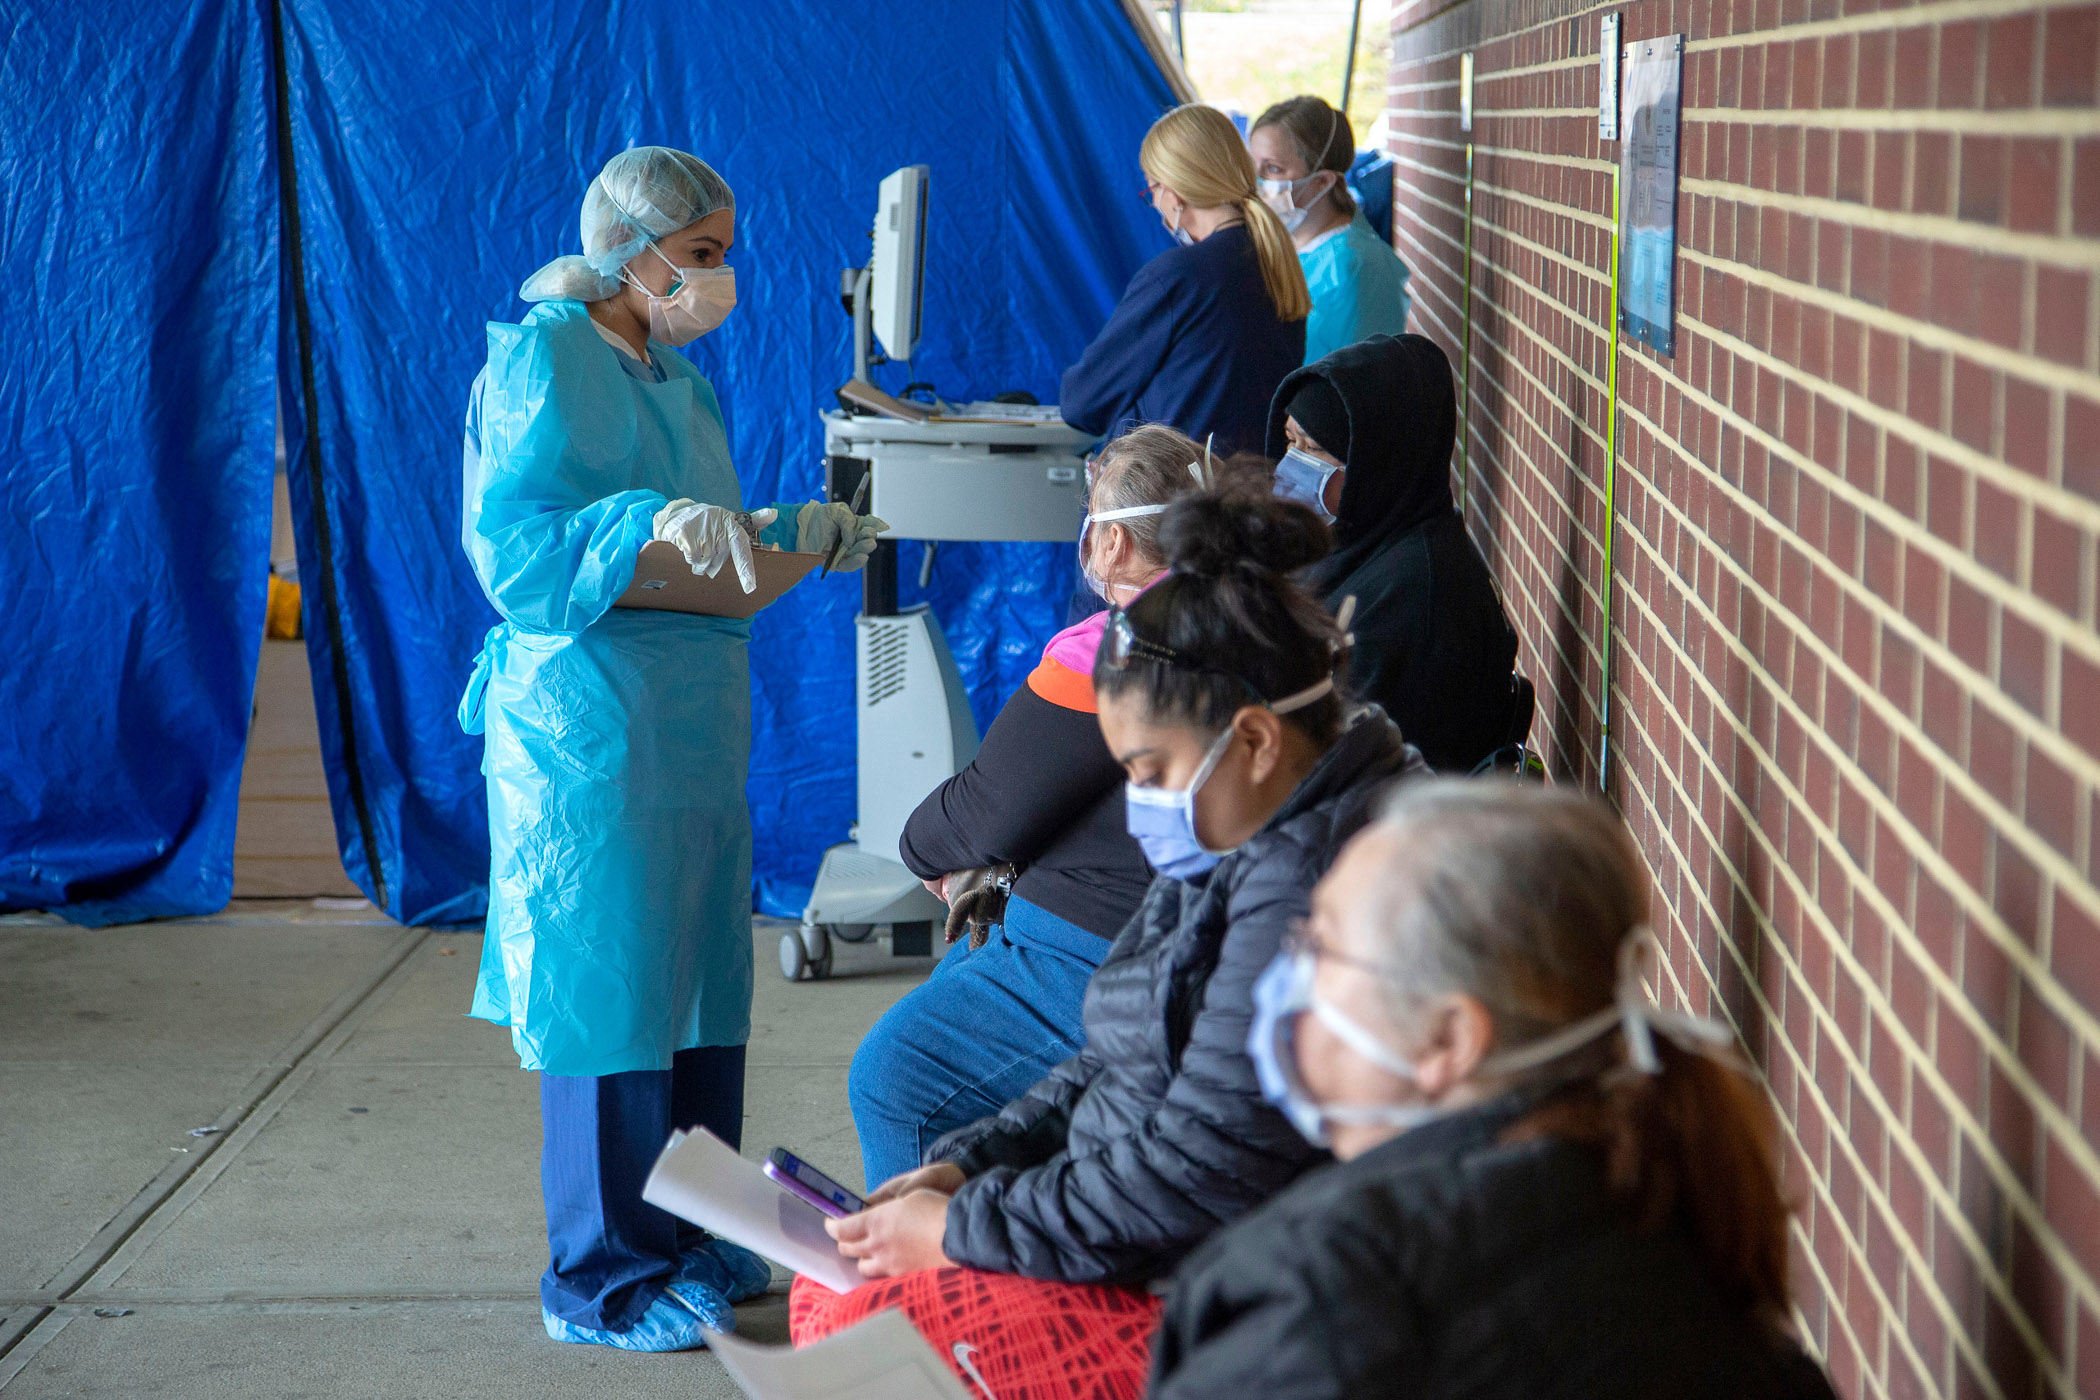 Inside Halloween Events 2020 Near Camden Ny Coronavirus update: Camden testing site opens as cases surge in NJ